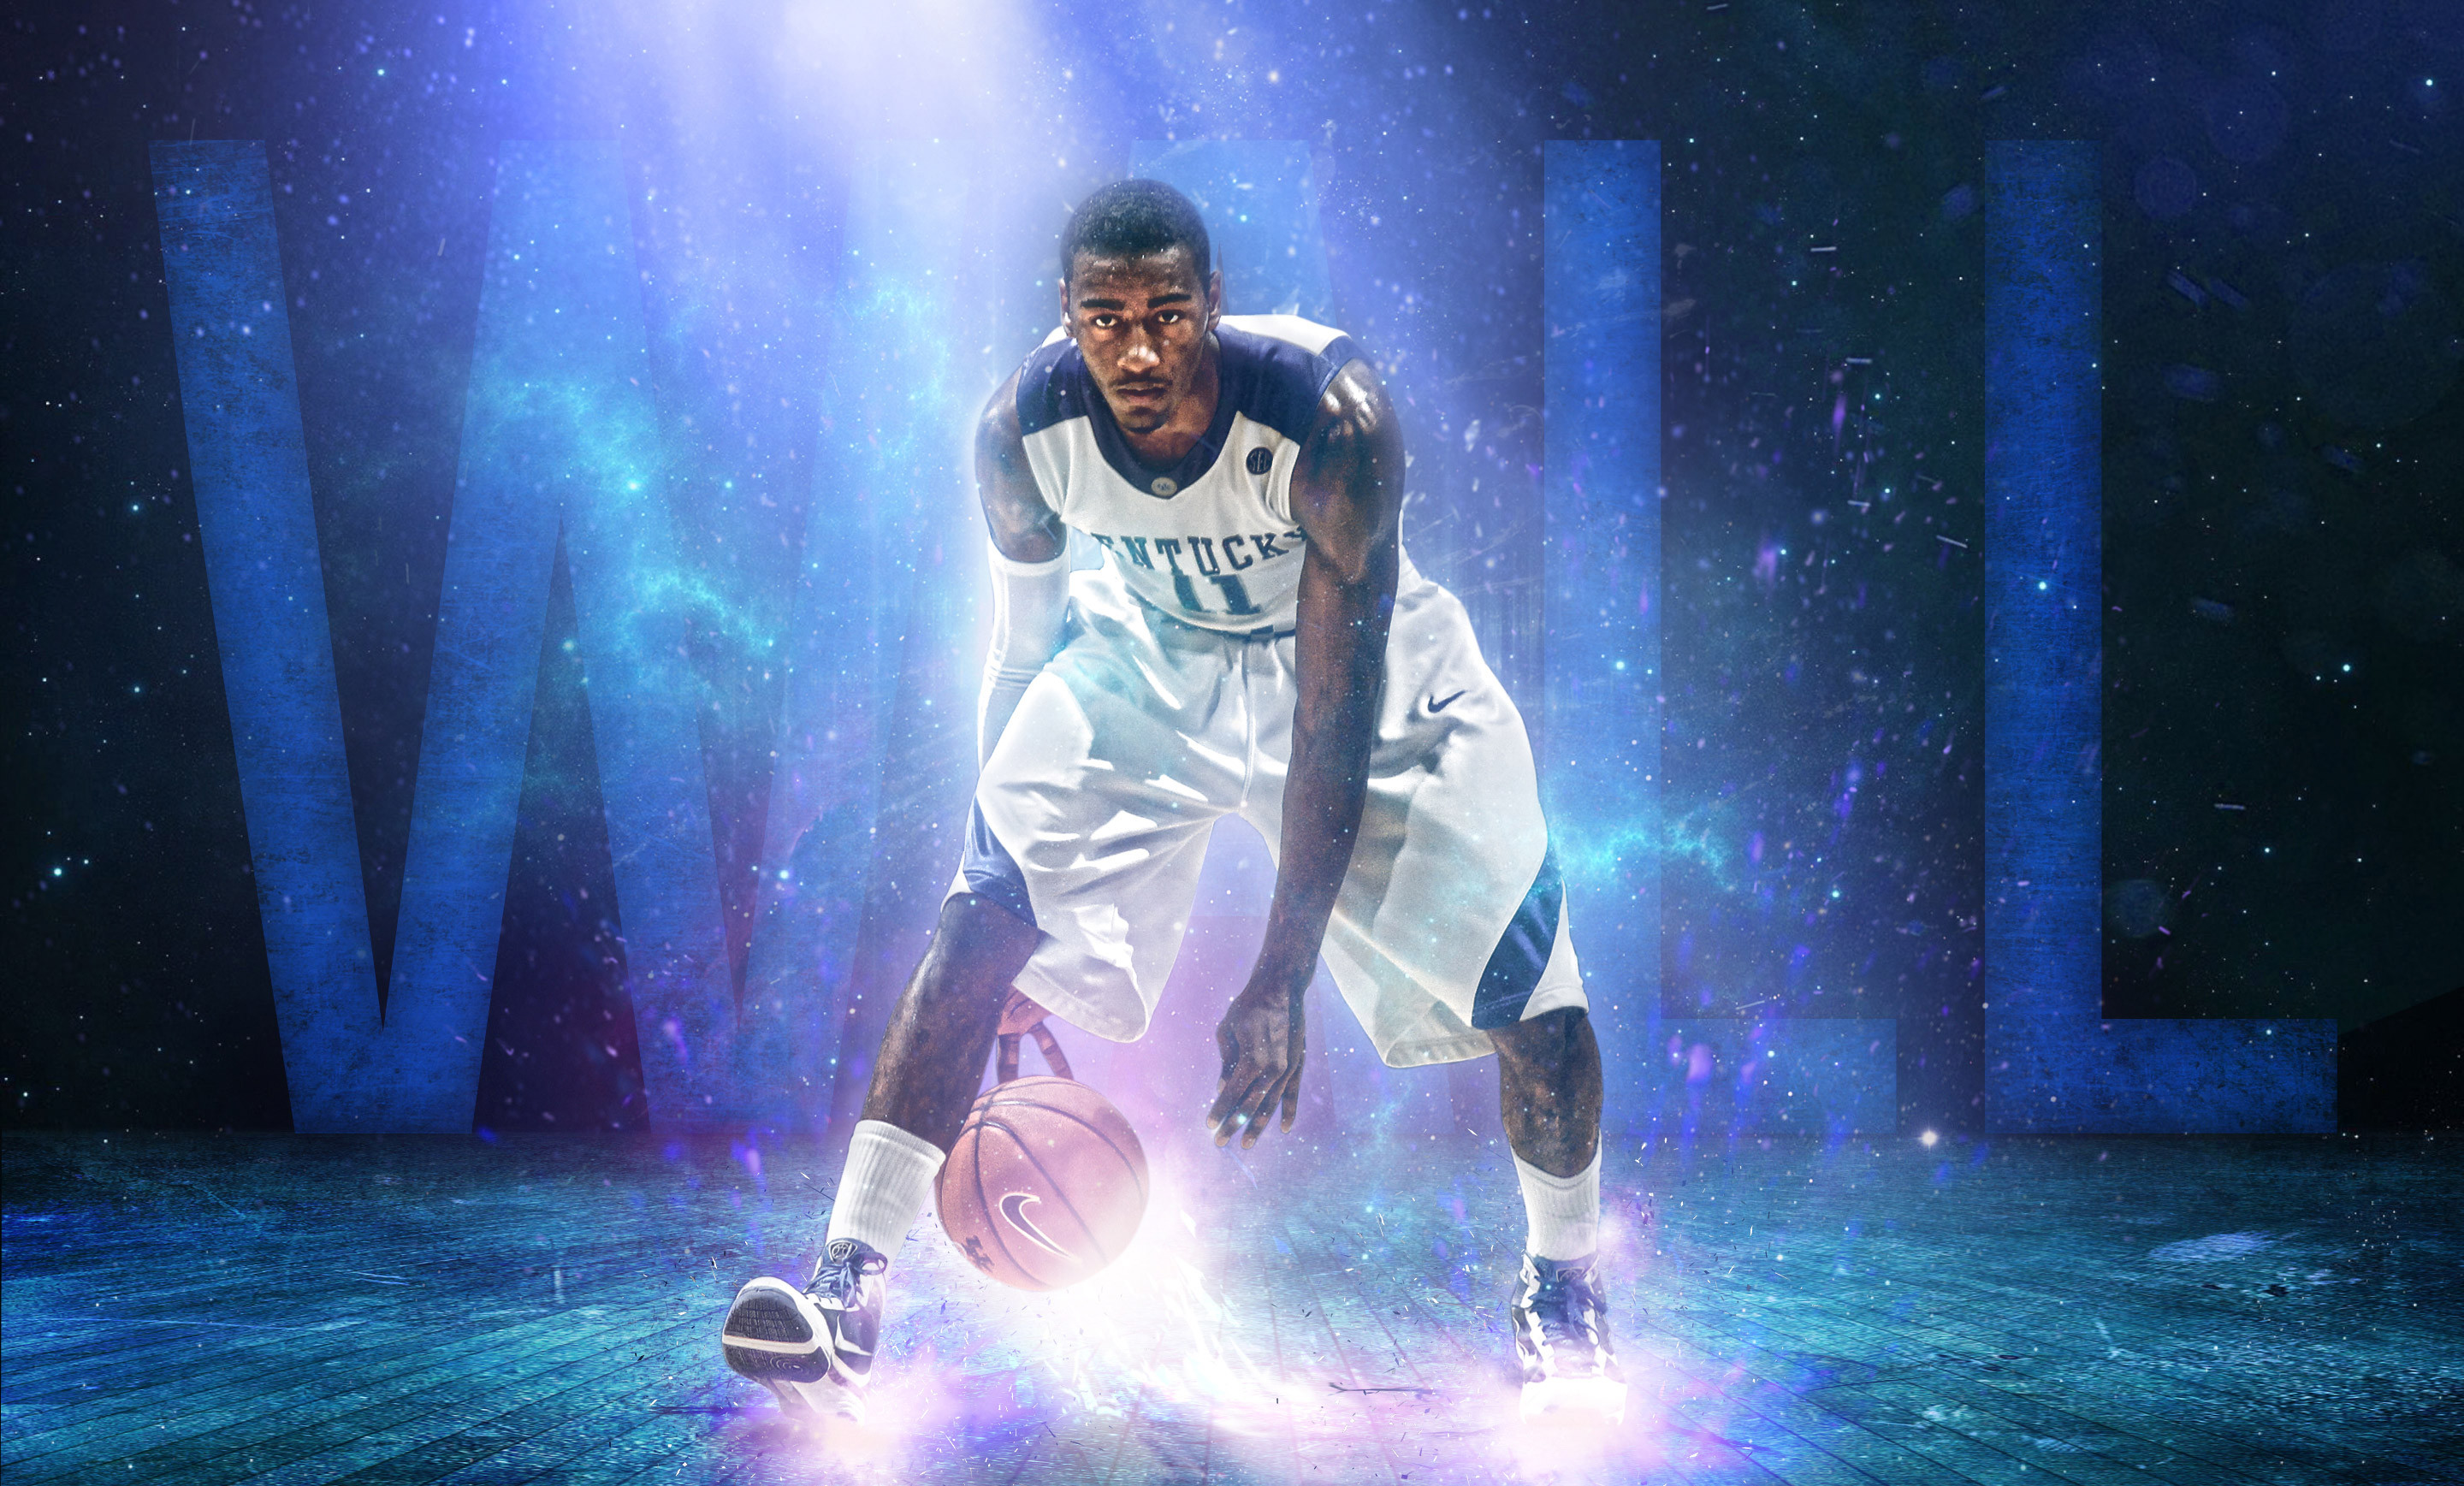 john wall kentucky wildcats hd download free amazing cool background images  mac tablet 2880×1737